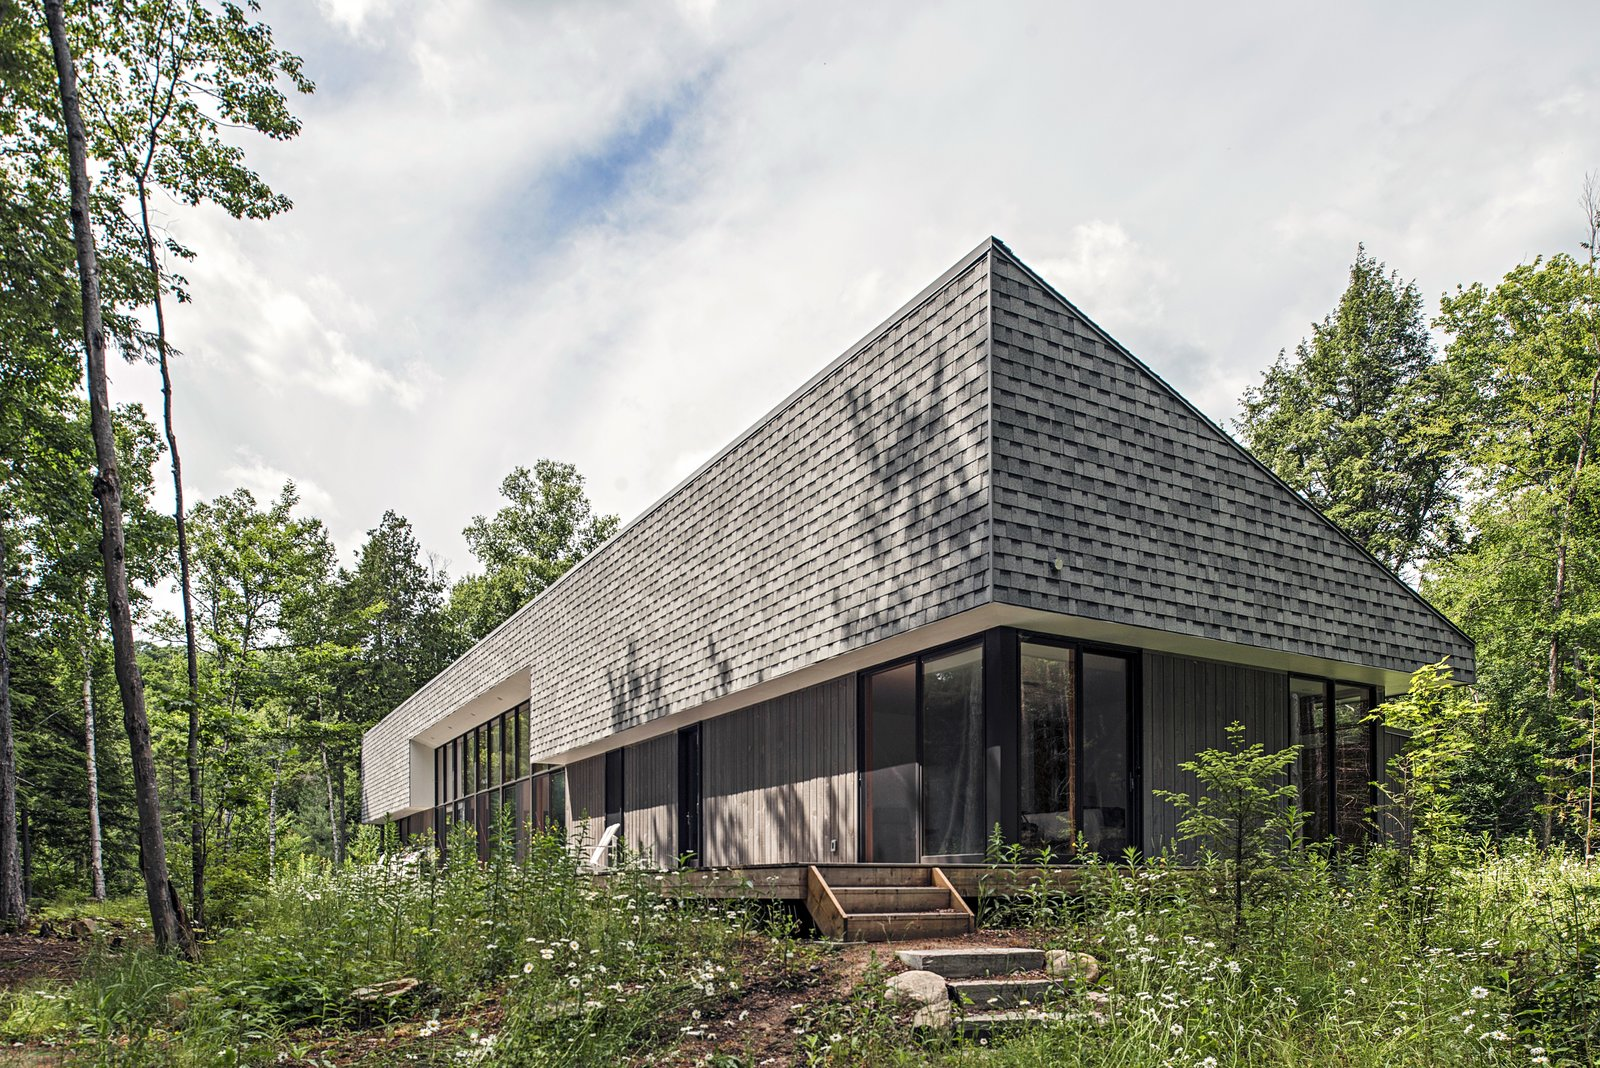 This Home in the Ontario Wilderness Is 12 Miles From the Nearest Powerline